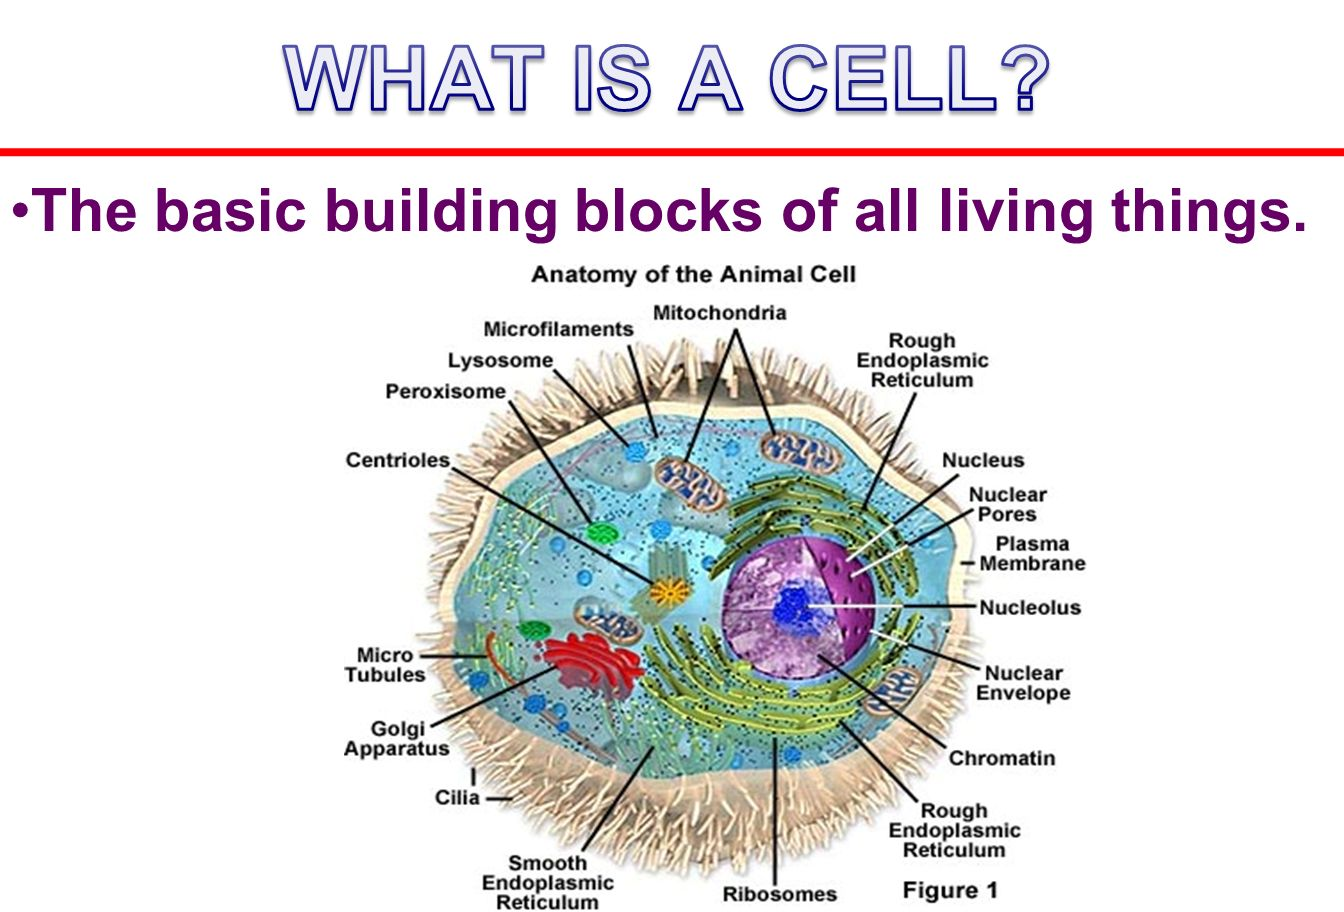 Basic Animal Cell Related Pictures Diagram With Labels Animaldefine The Building Blocks Of All Living Things Download 1344x912